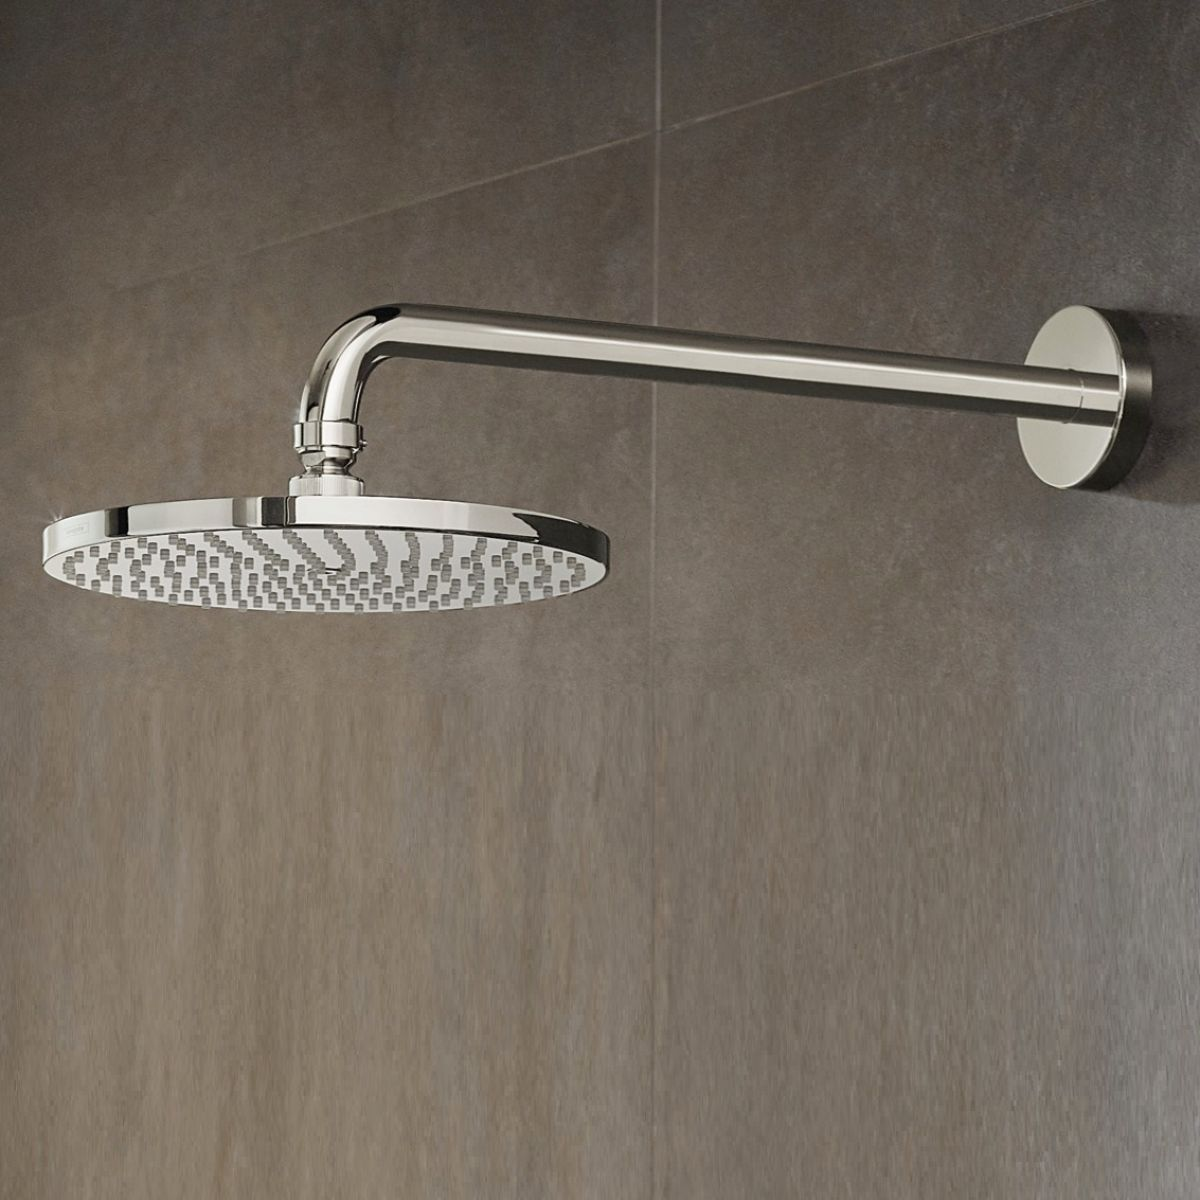 Hansgrohe Raindance S 240 Overhead (With images